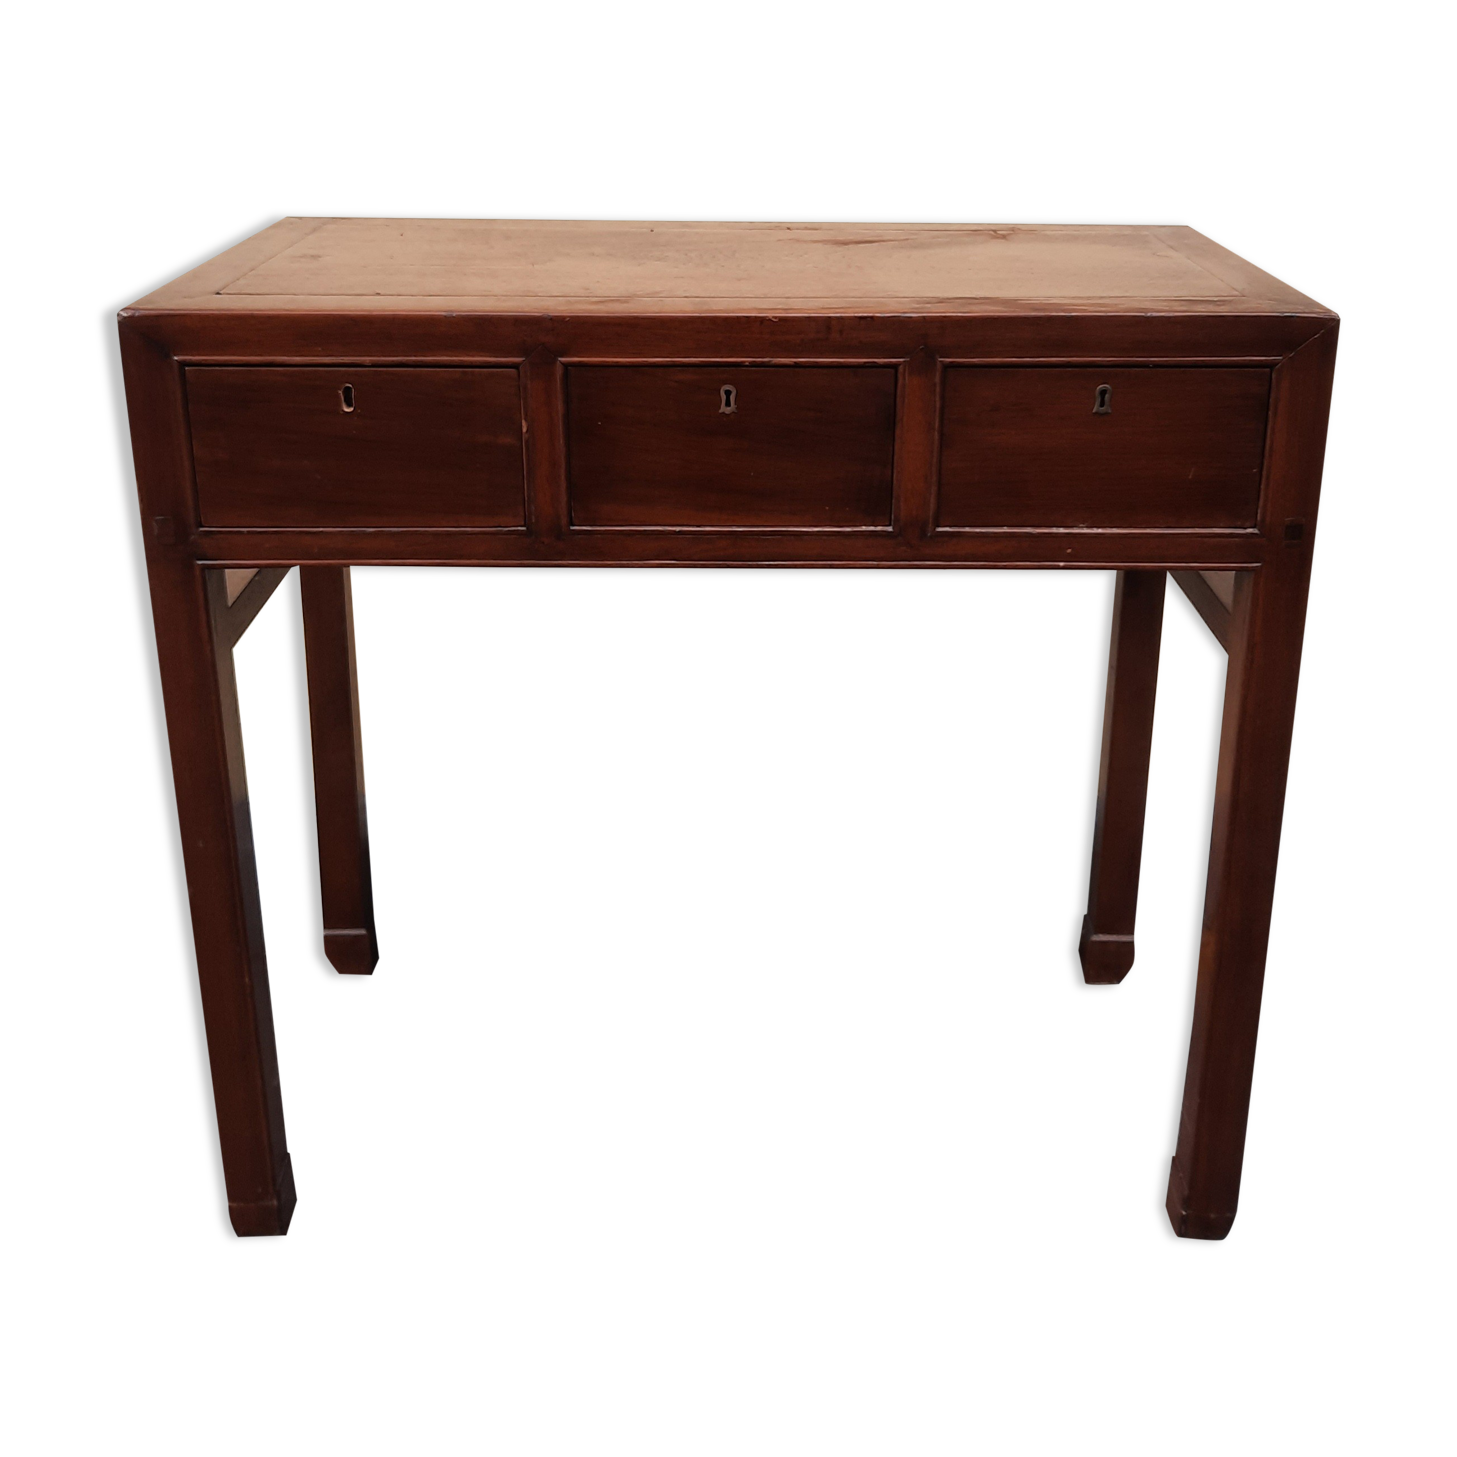 Table console d extreme orient